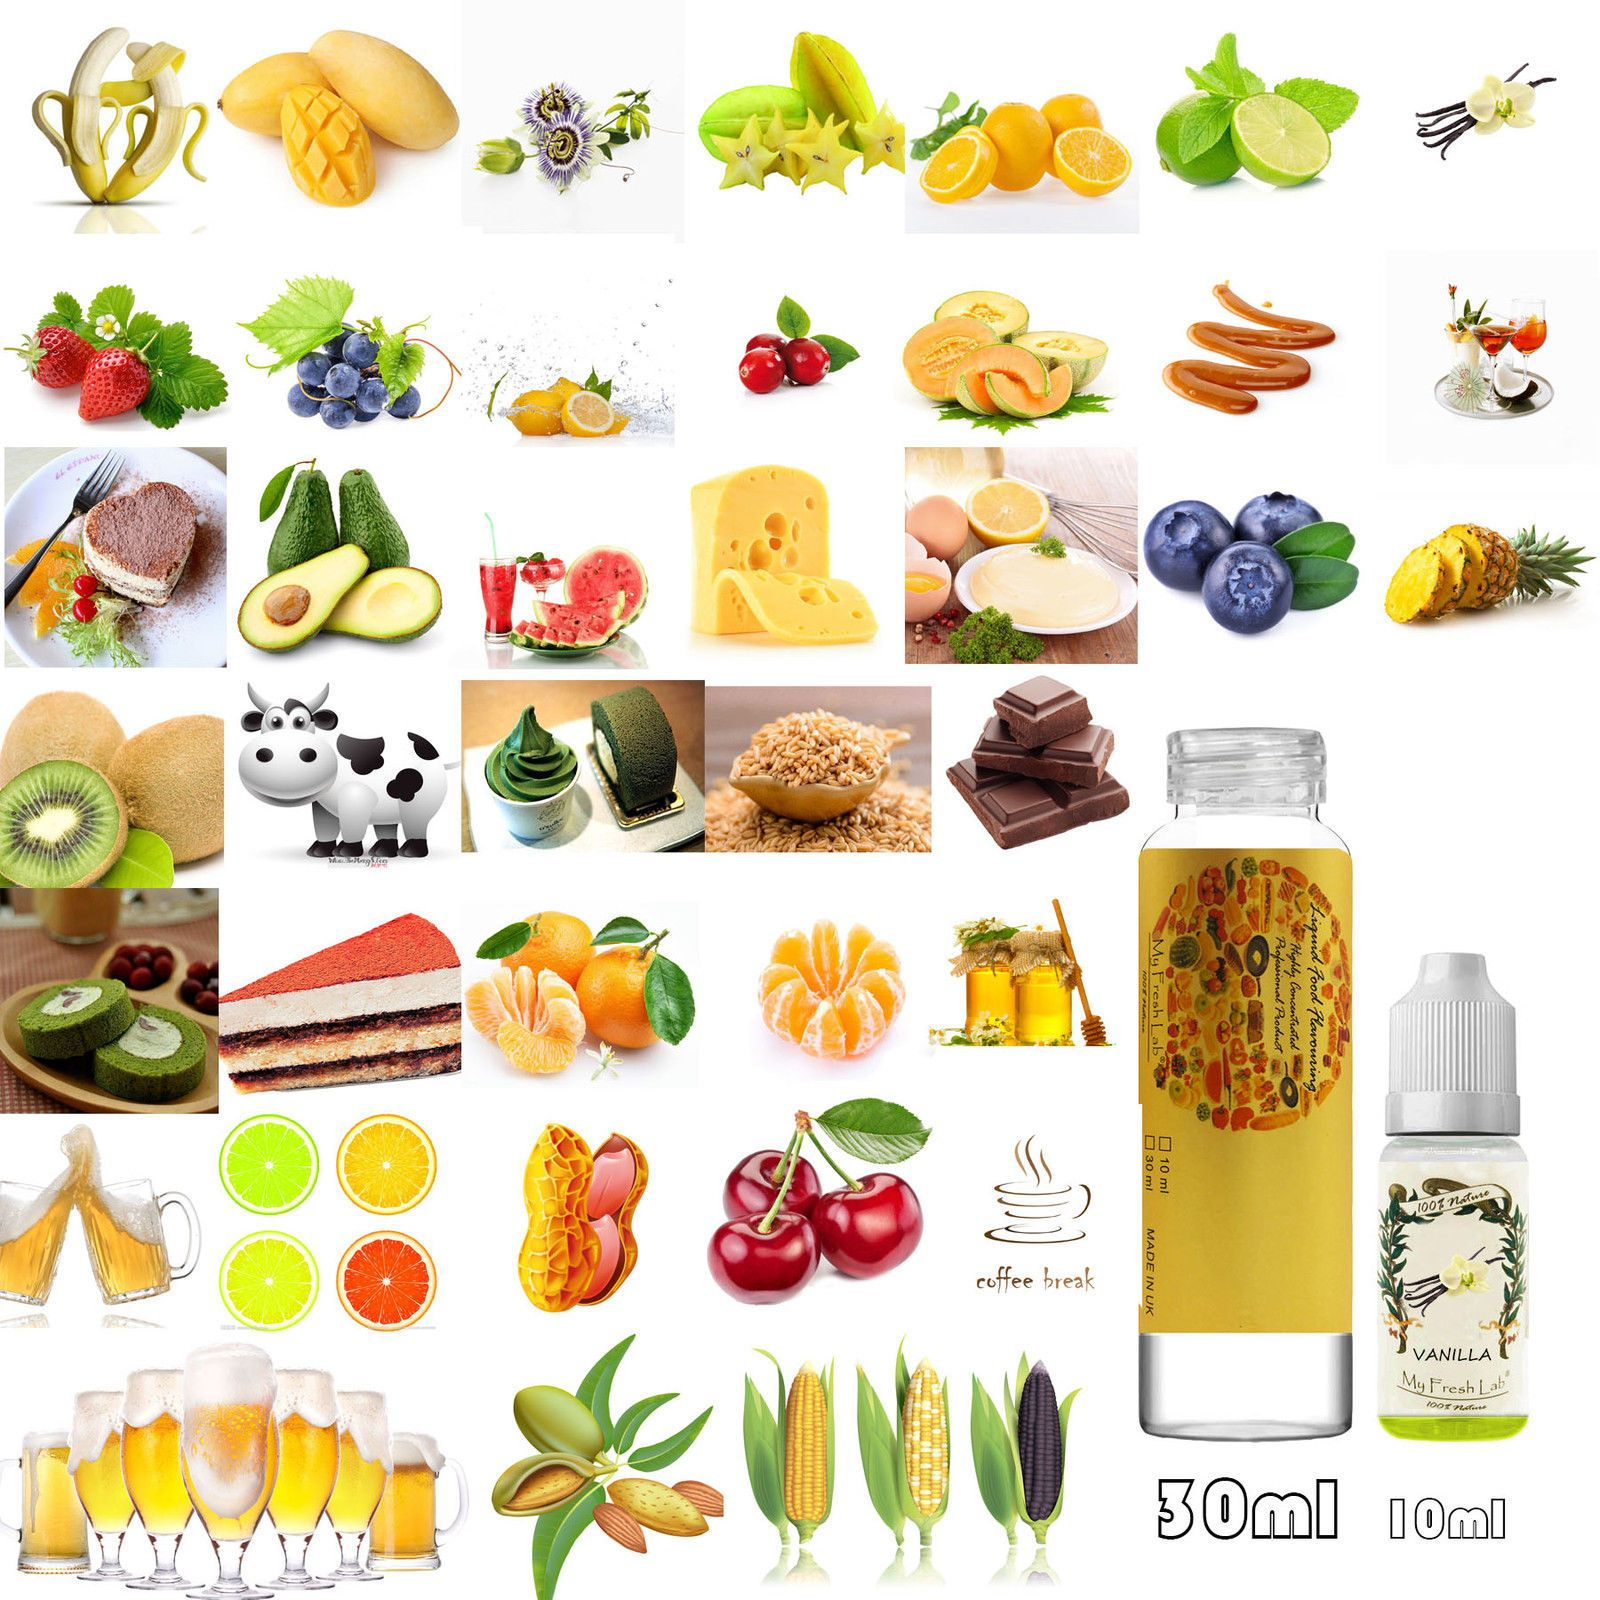 10ml&30ml Concentrated Liquid Food Flavourings 40+ Flavour Baking